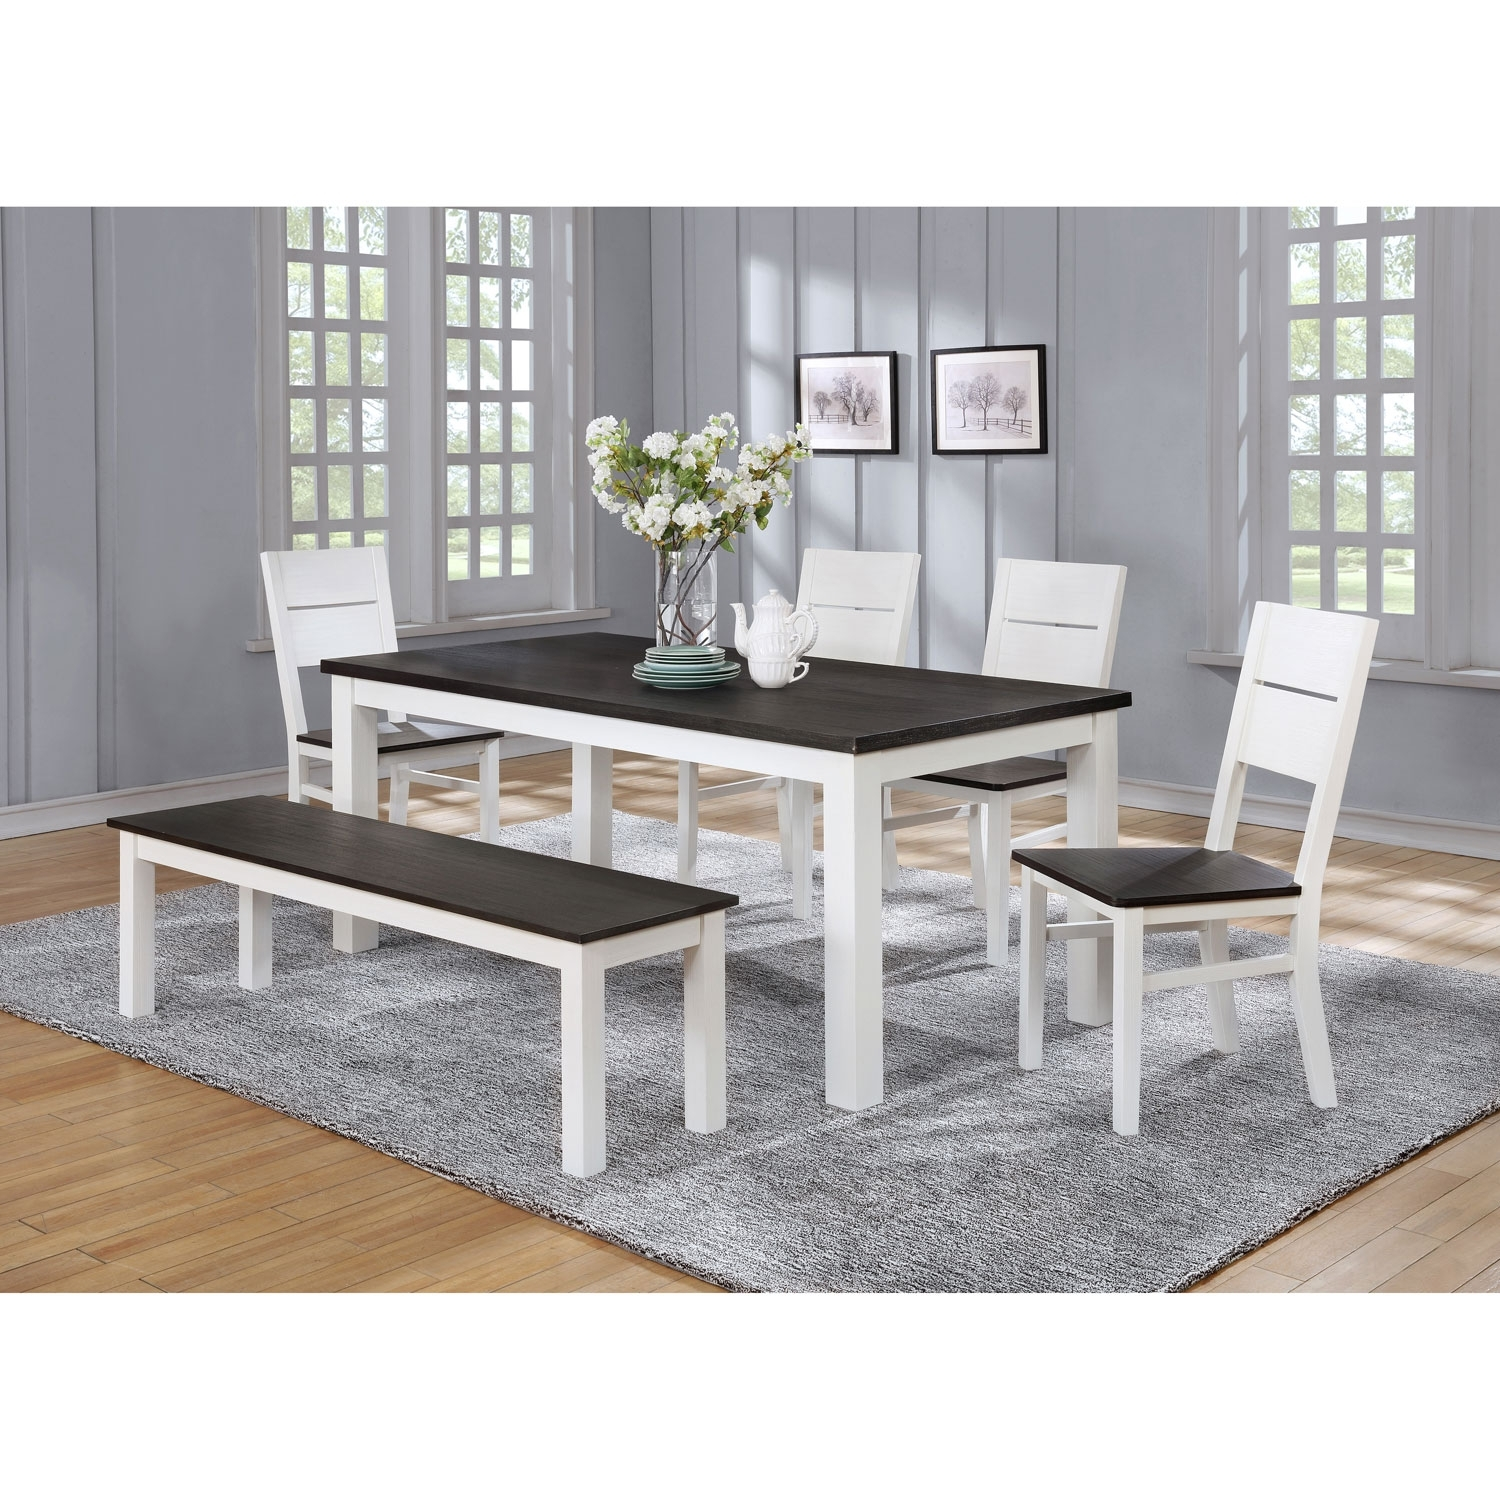 Lauren Traditional 6 Seating Rectangular Casual Dining Table – White Regarding Best And Newest Laurent 7 Piece Rectangle Dining Sets With Wood Chairs (View 13 of 20)